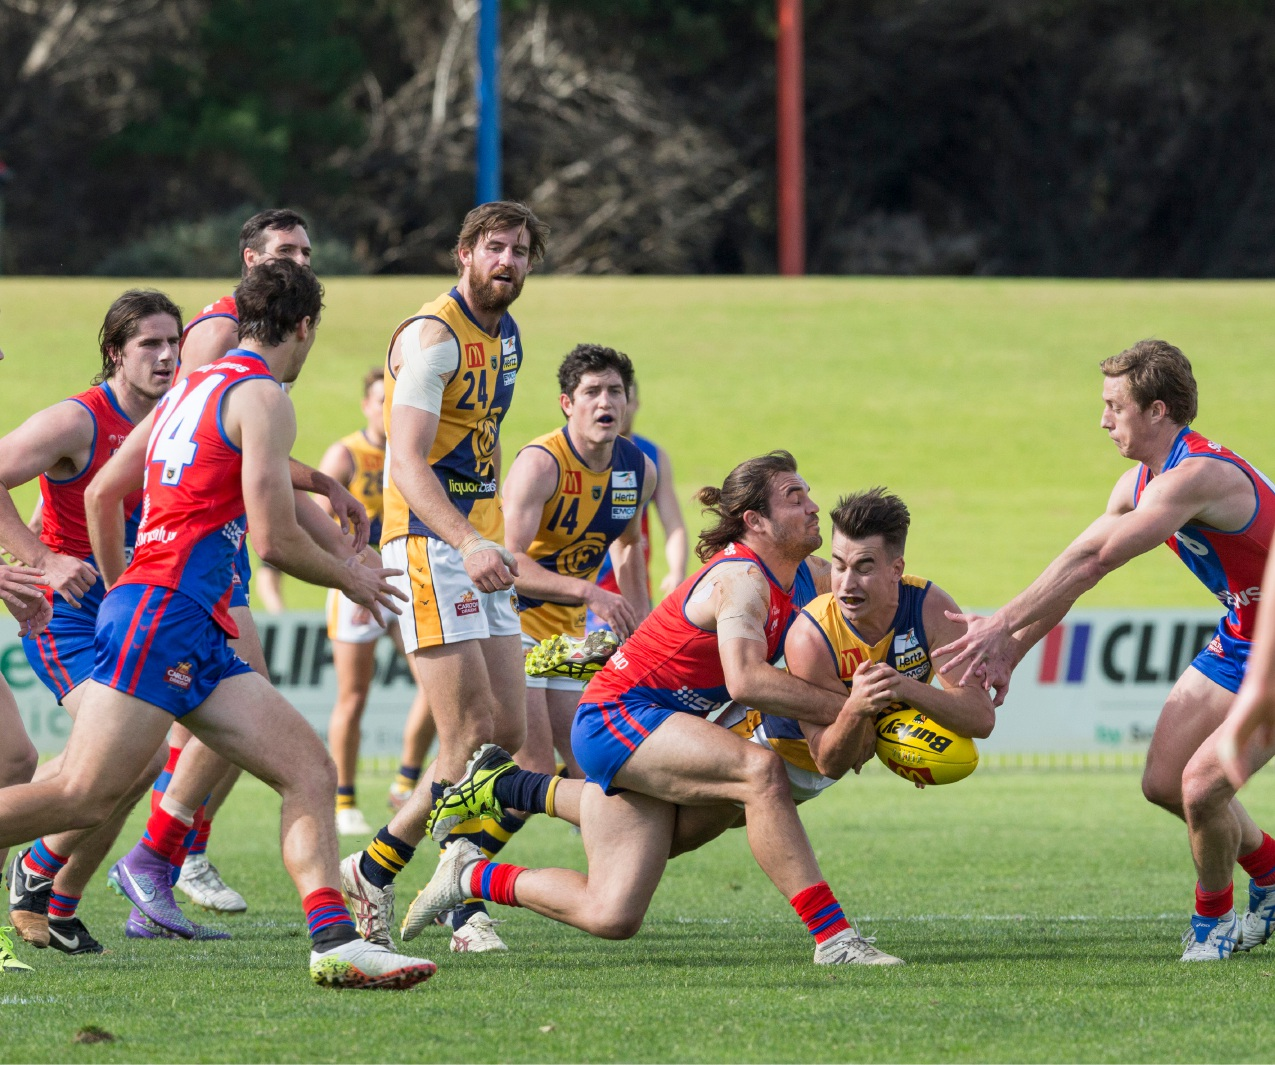 West Perth's Aaron Black tackles Claremont's Jake Murphy. Picture: Dan White